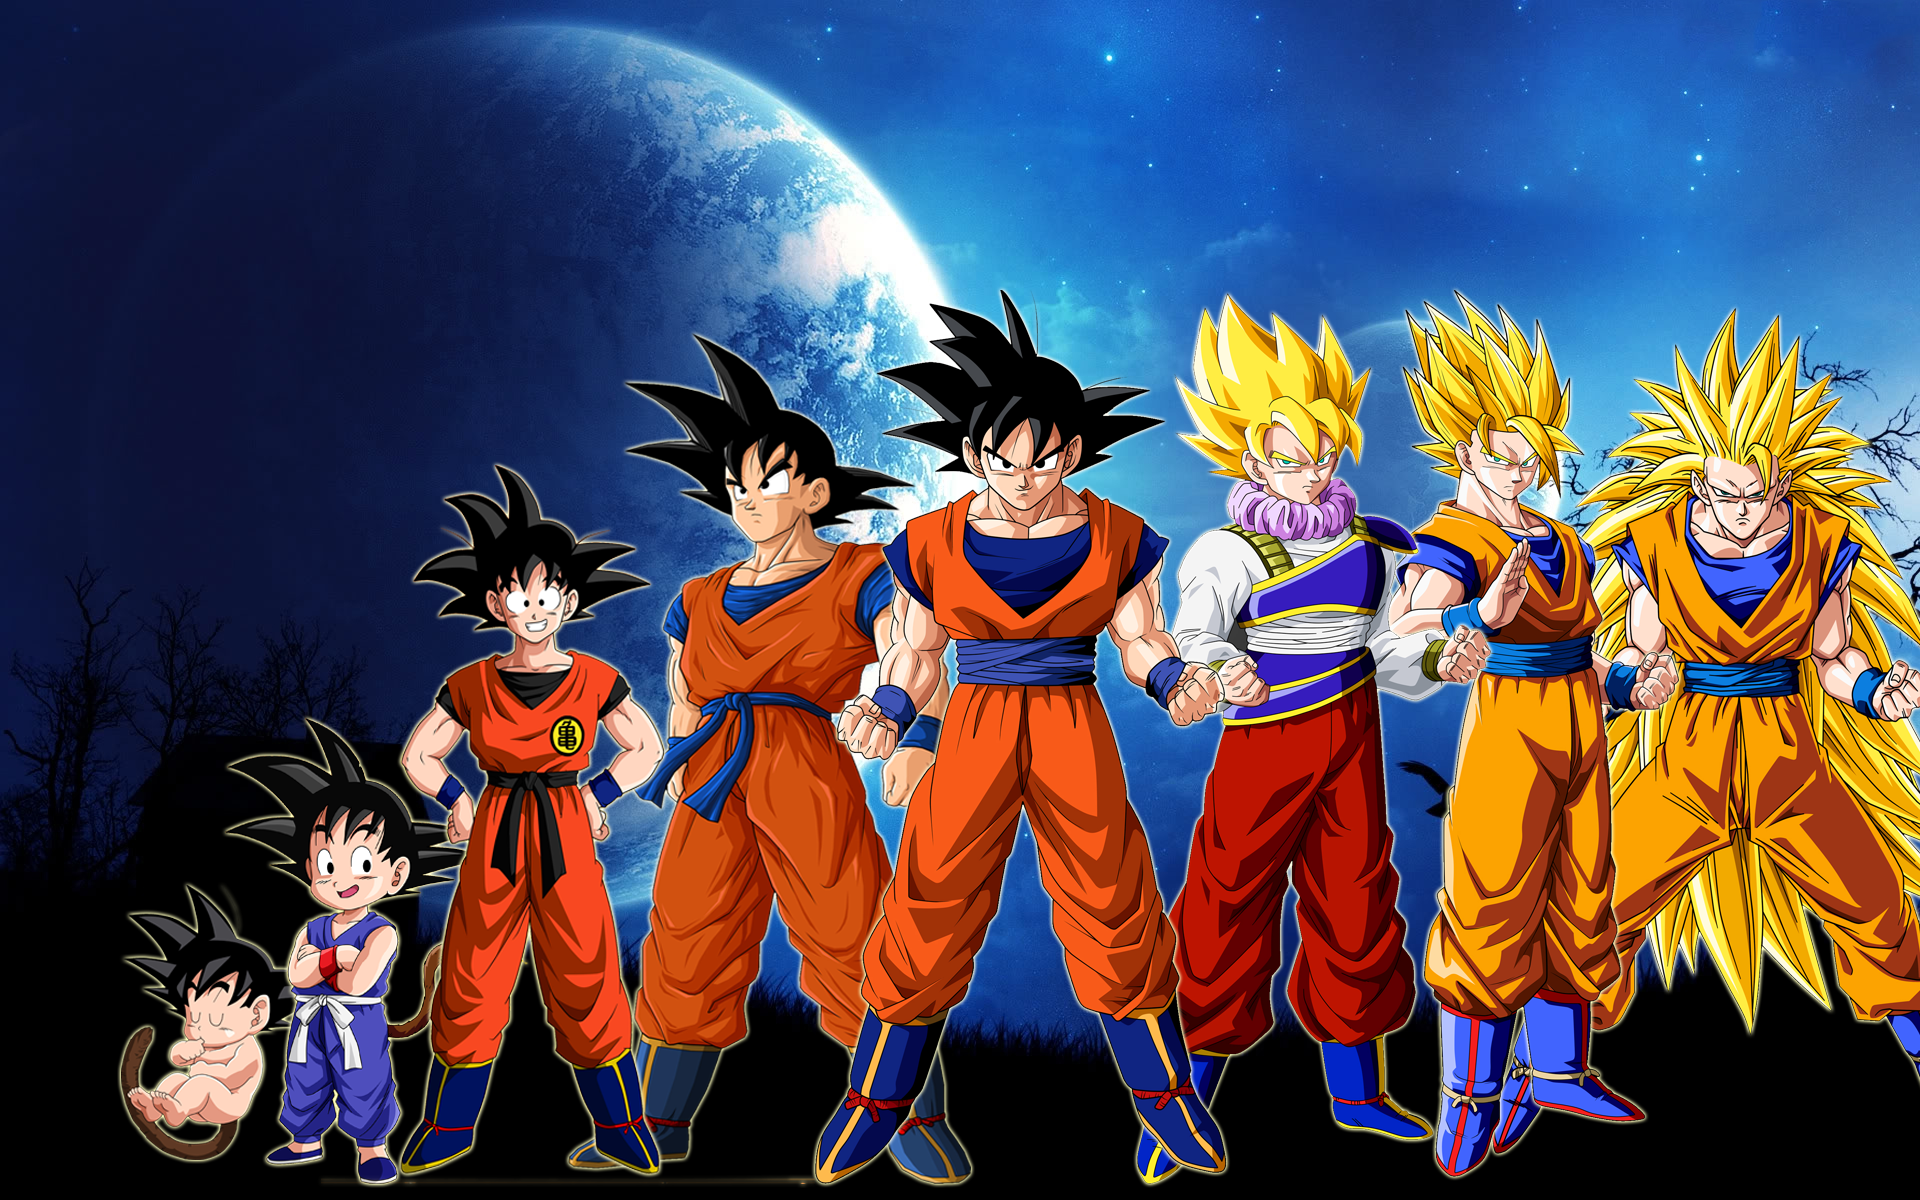 dbz images dbz hd wallpaper and background photos (35427193)